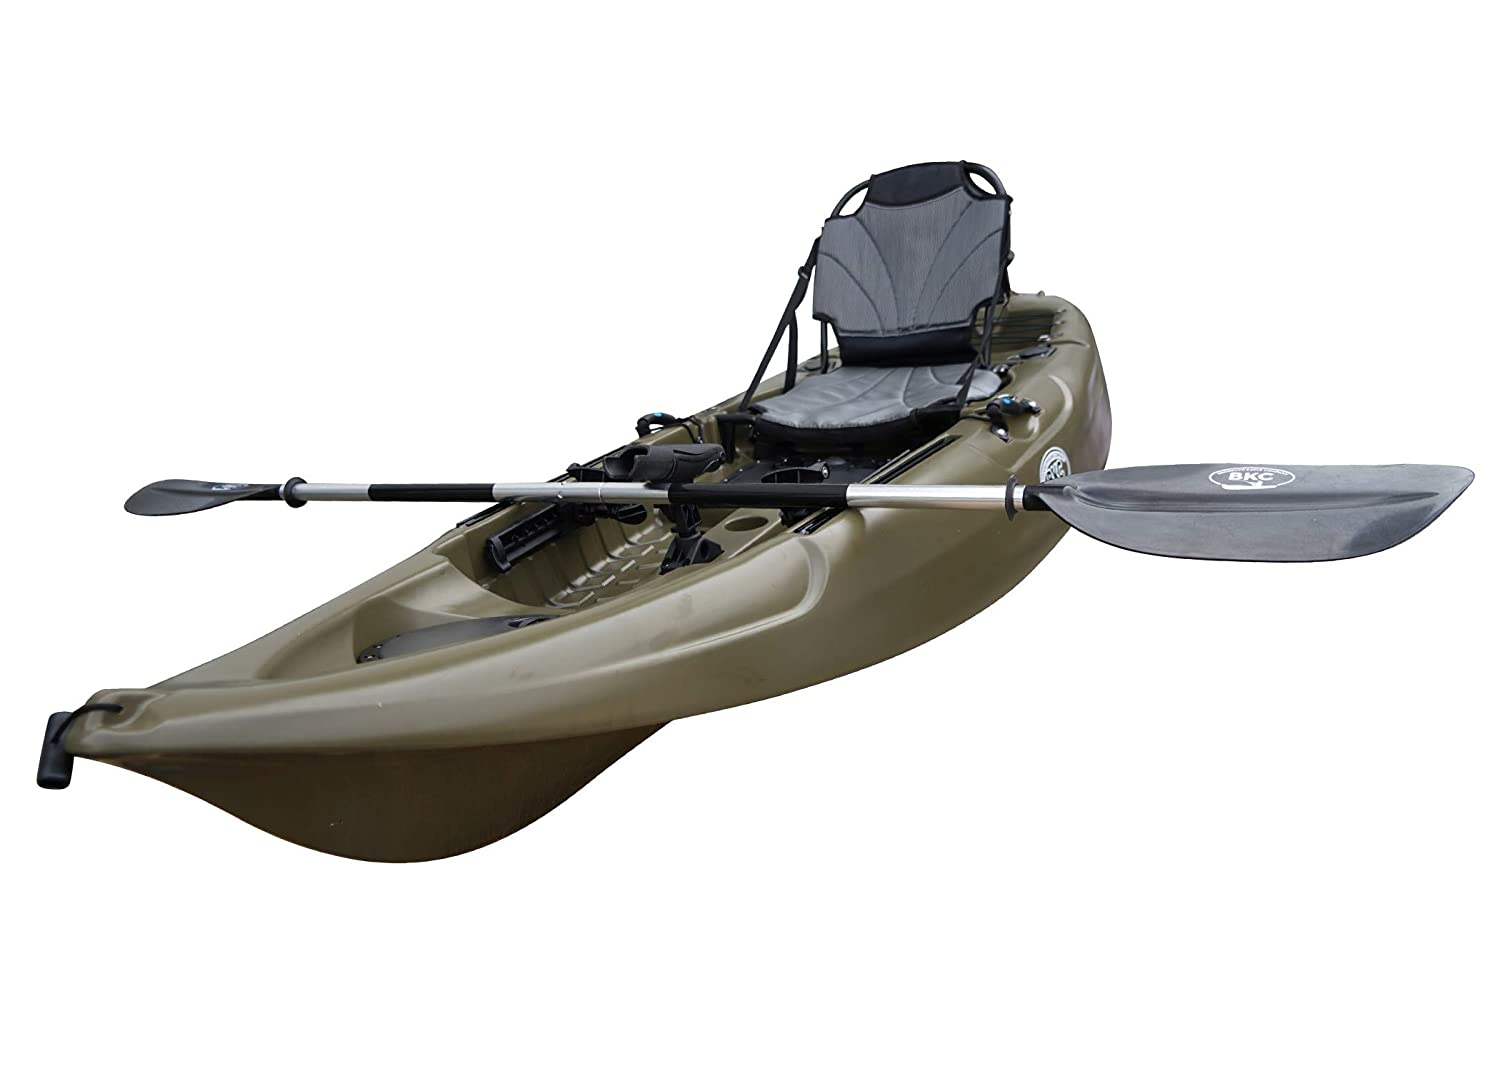 BKC FK285 9.5' Sit On Top Single Fishing Kayak W/Upright Back Support Aluminum Frame Seat, Paddle Included Solo Sit-On-Top Angler Kayak